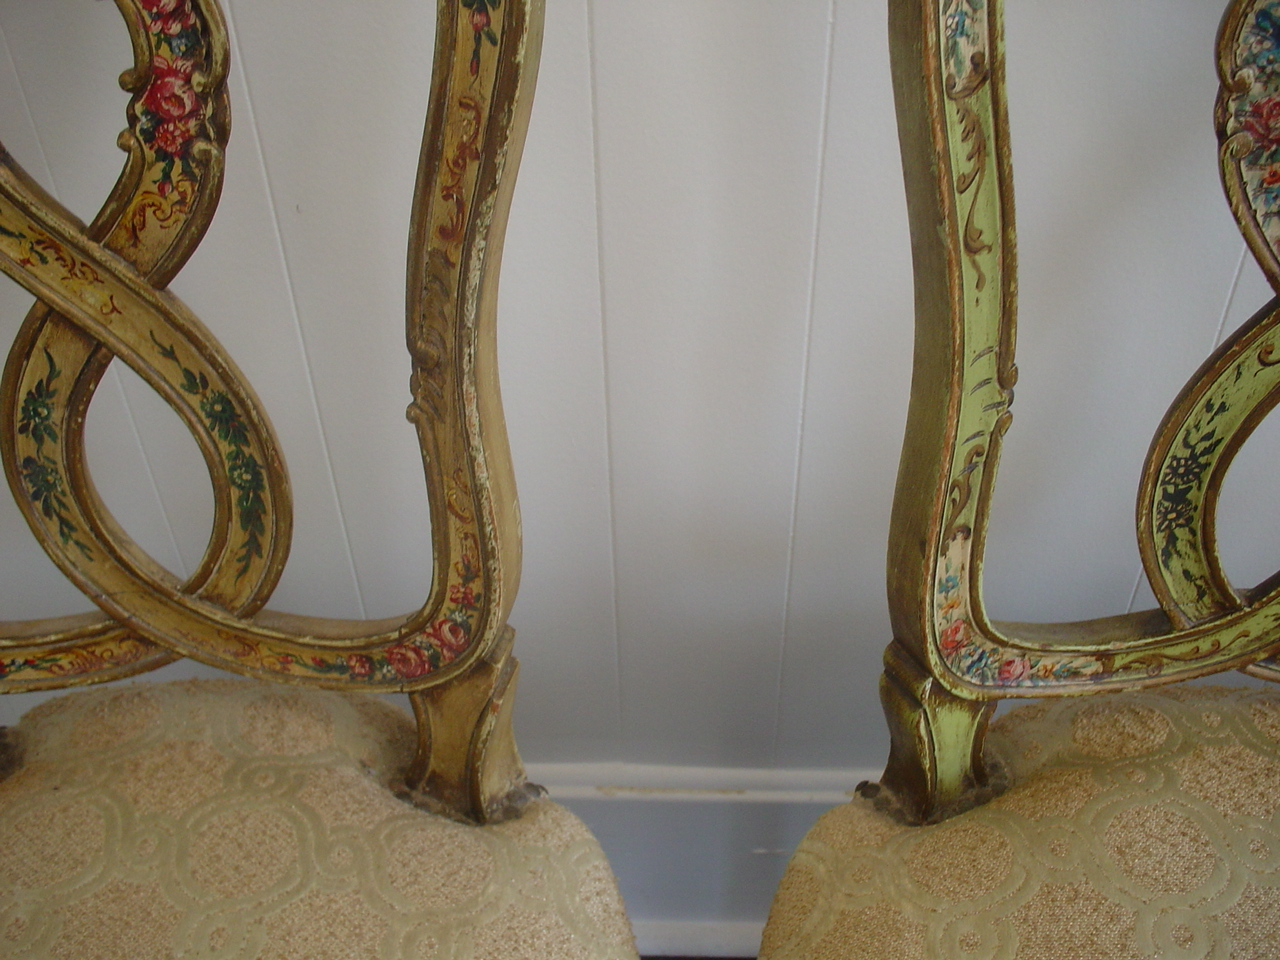 Country French Hand Painted Chairs Roses Art Antiques Michigan - Country french chairs